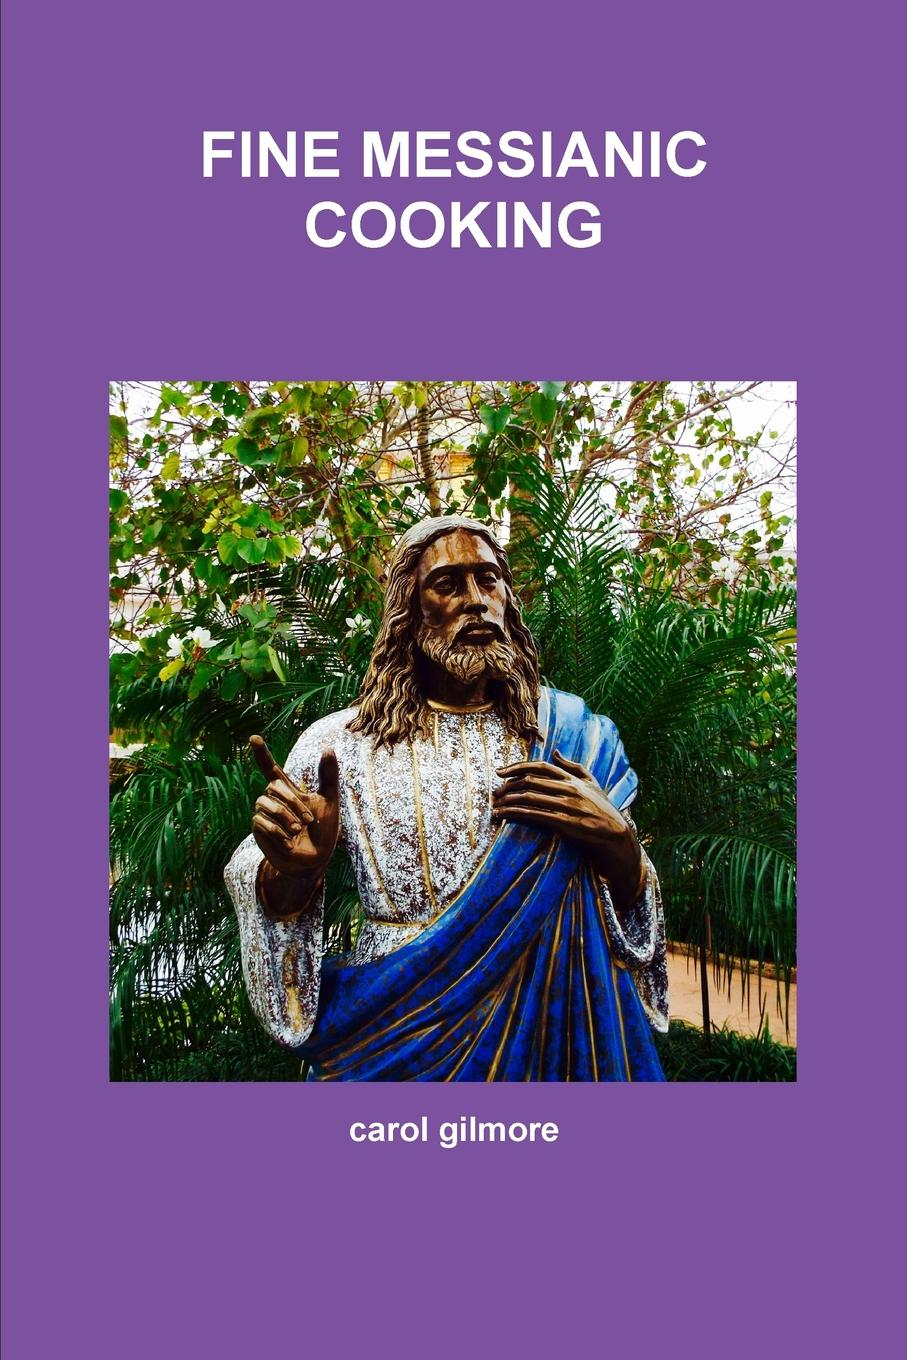 carol gilmore FINE MESSIANIC COOKING new german cooking recipes for classics revisited